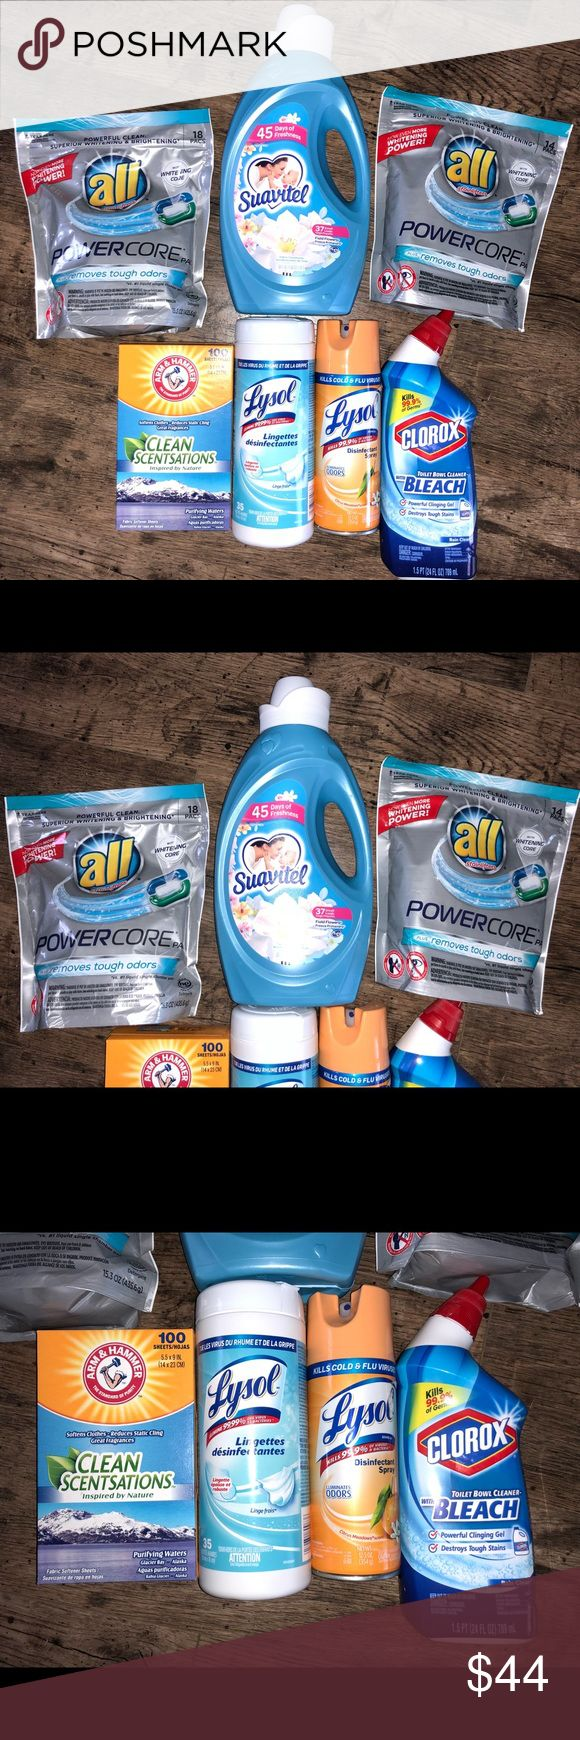 Household Laundry Cleaning Supplies Bundle /Lot 7 Piece Lot Household Laundry and Cleaning Supplies Bundle / Lot!  Bundle Includes:  (2) Packs ALL Powercore Detergent Pods         (1) Suavitel Fabric Softener  (1) Box Arm & Hammer Clean Scentsations       Dryer Sheets  (1) Lysol Disinfectant Wipes  (1) Lysol Disinfectant Spray  (1) Clorox Toilet Bowl Cleaner w/ Bleach       Clinging Gel  Please note that we sell on three different venues, so ALL of our items are limited time offers and are…